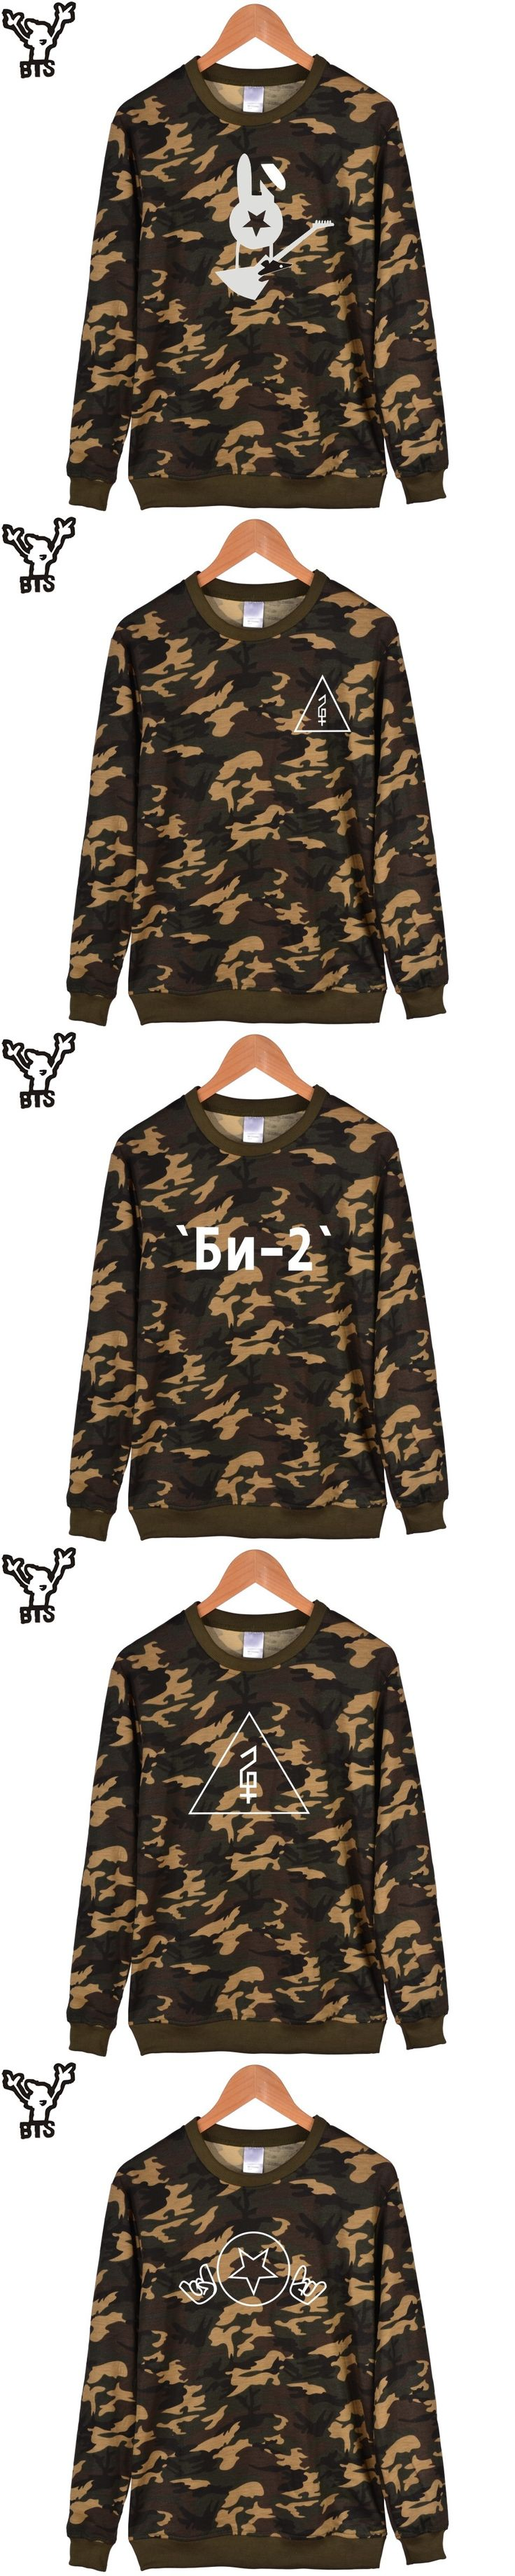 Bi-2 Rock Band Capless Camouflage Hoodies Men Hip Hop Fashion Khaki Mens Hoodies And Sweatshirts Russian Famous Singer Clothes